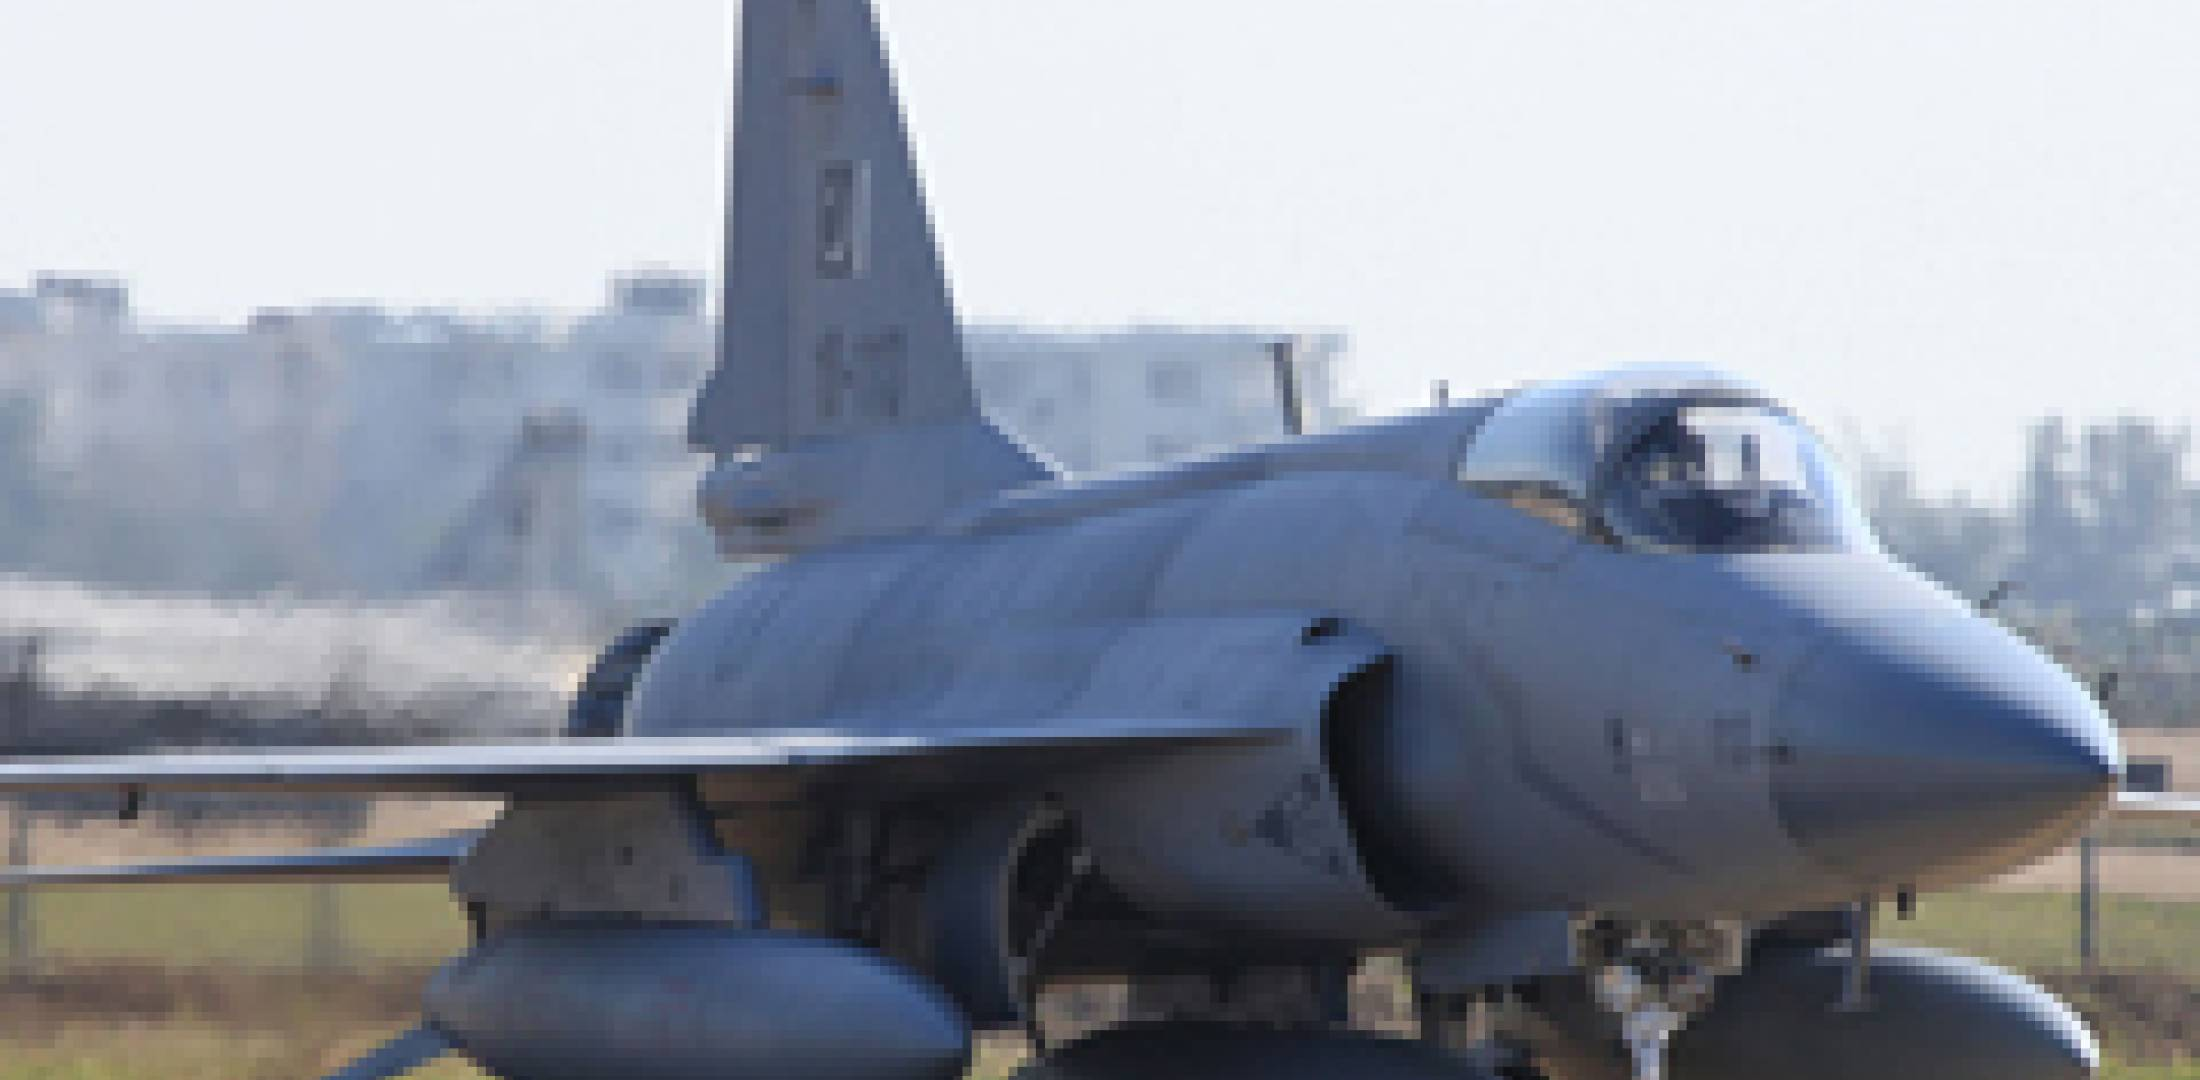 China will provide 50 Chengdu JF-17 Thunder fighters to Pakistan, according t...